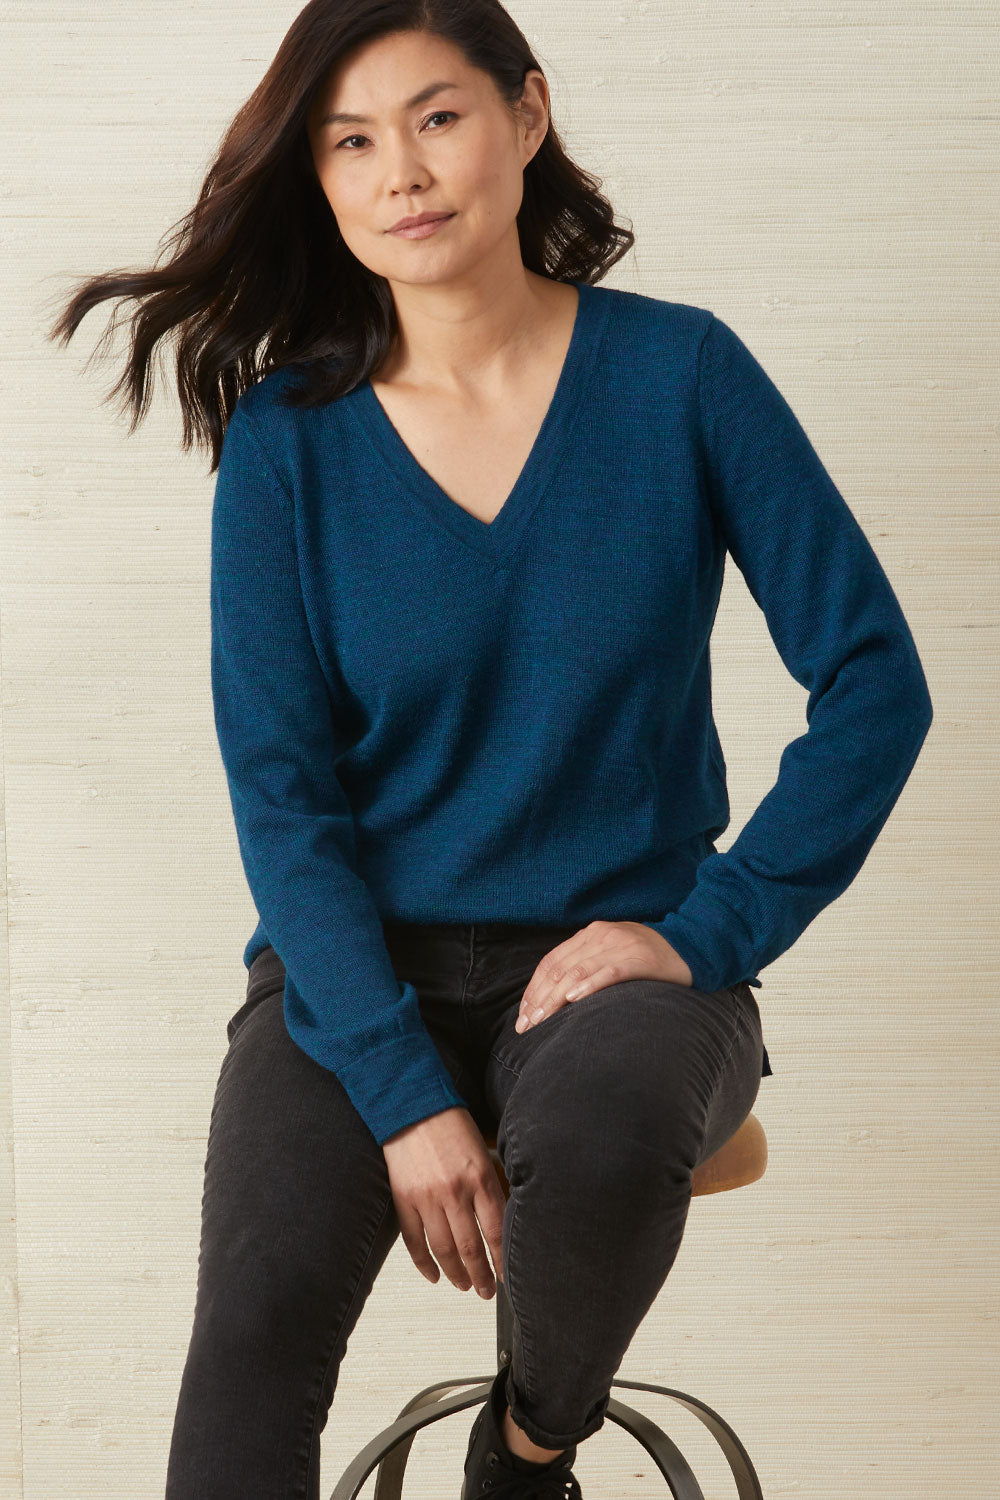 fair-indigo-womens-fair-trade-alpaca-boyfriend-v-neck-sweater